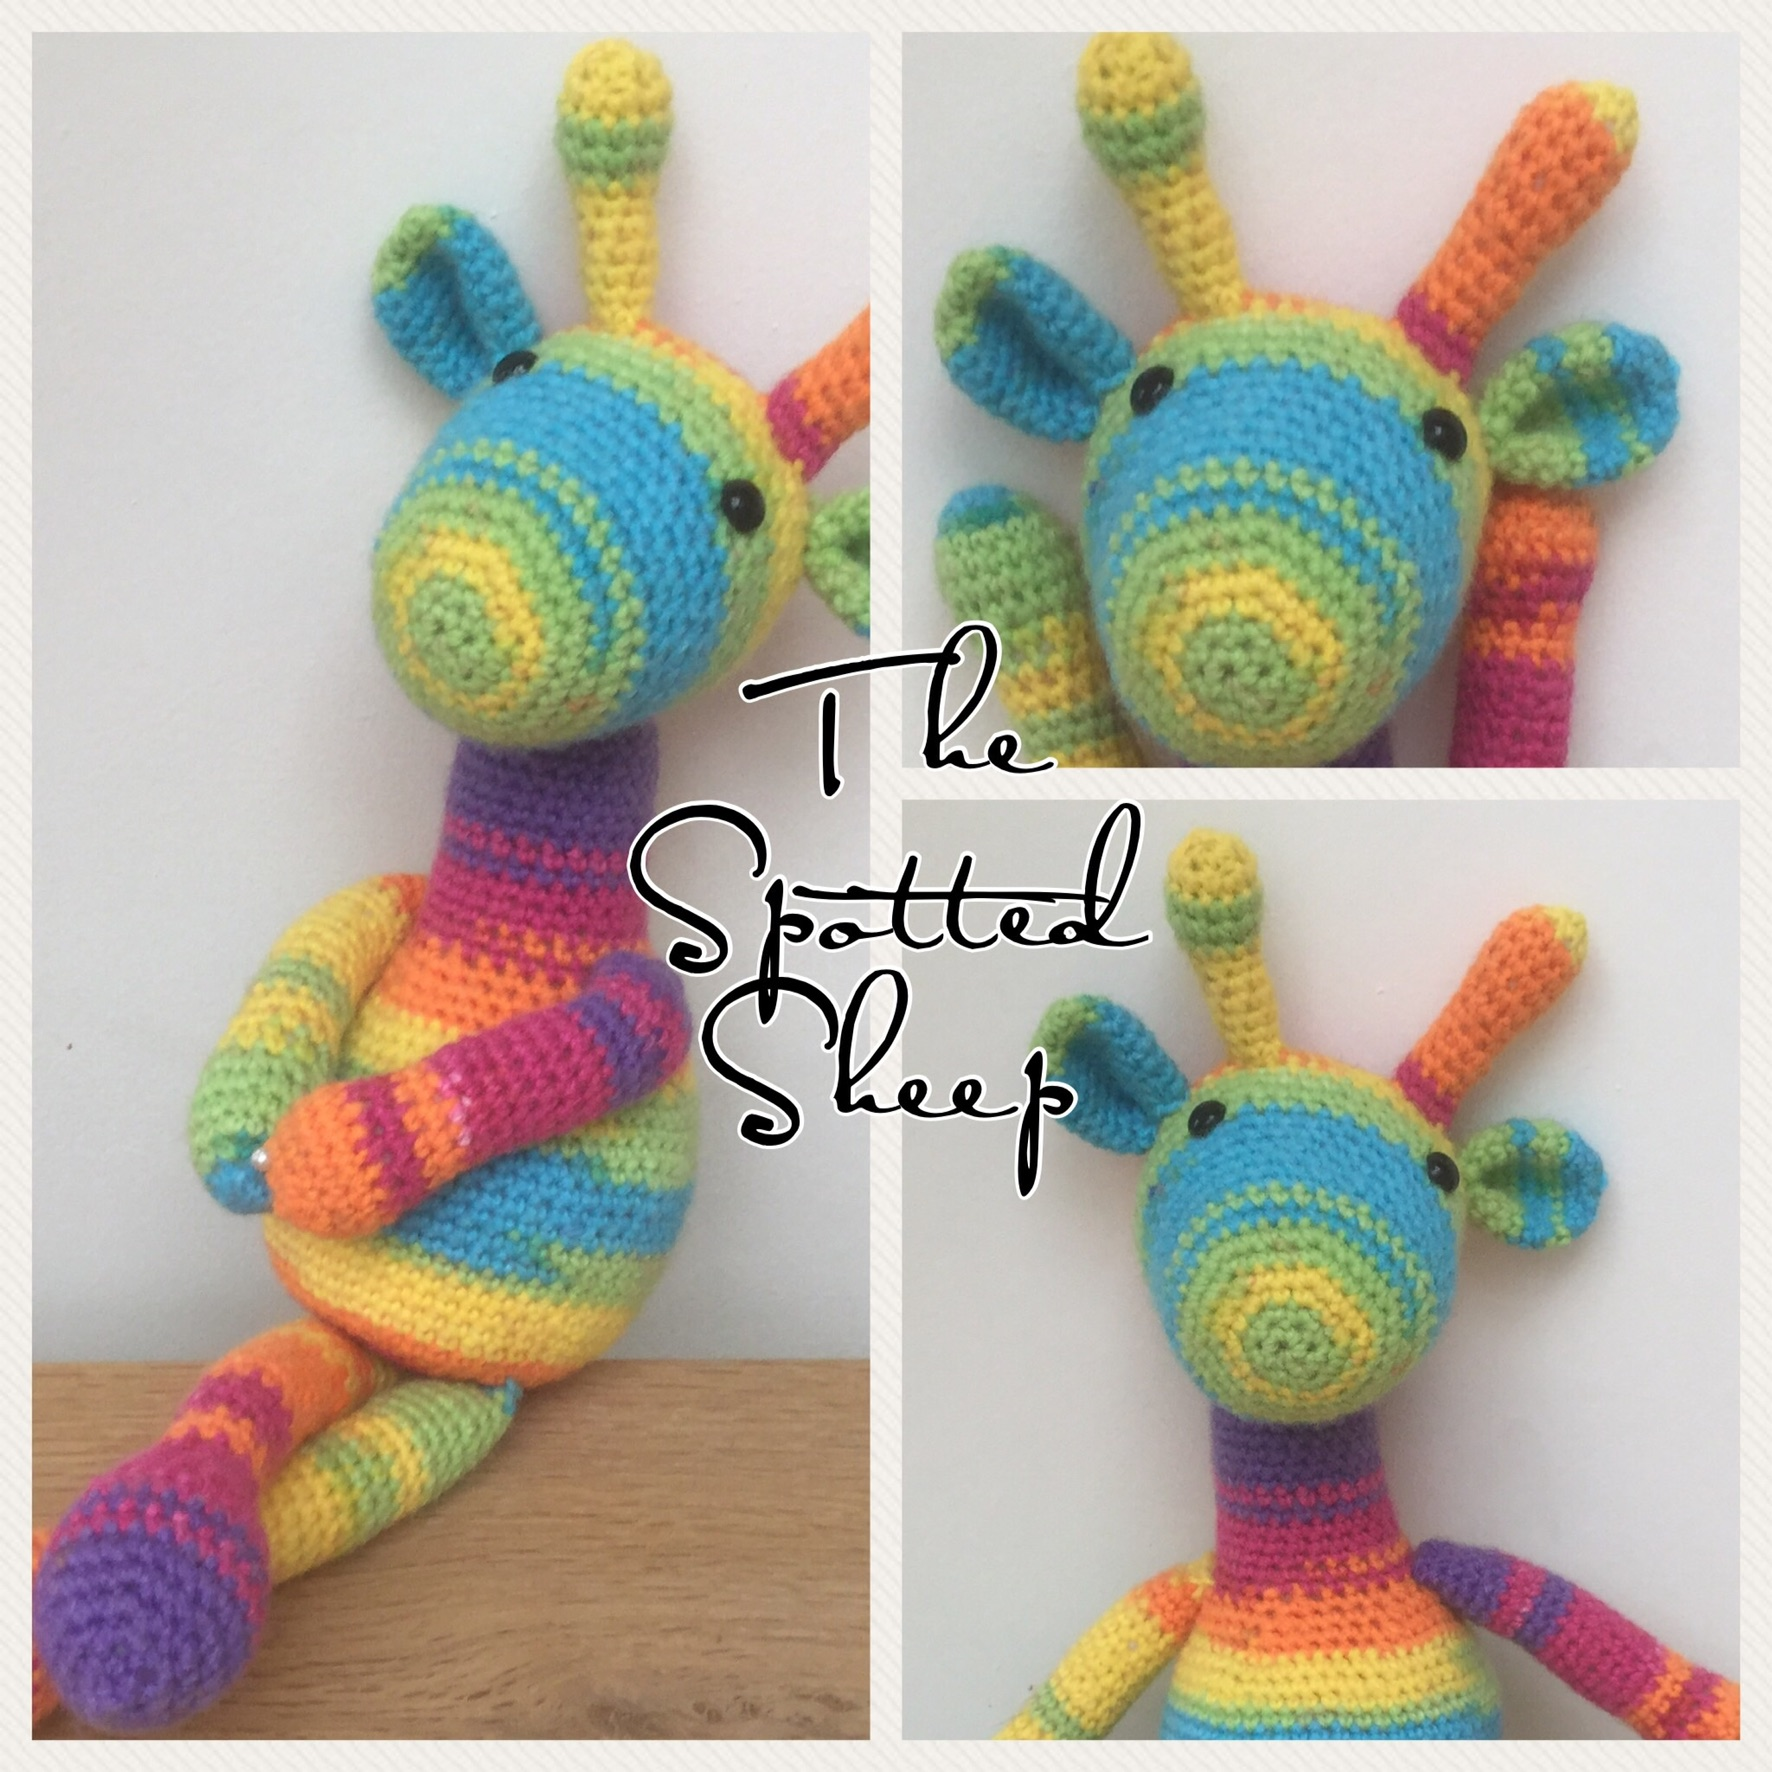 Sophia Amigurumi Crocheted Giraffe Pattern from The Spotted Sheep